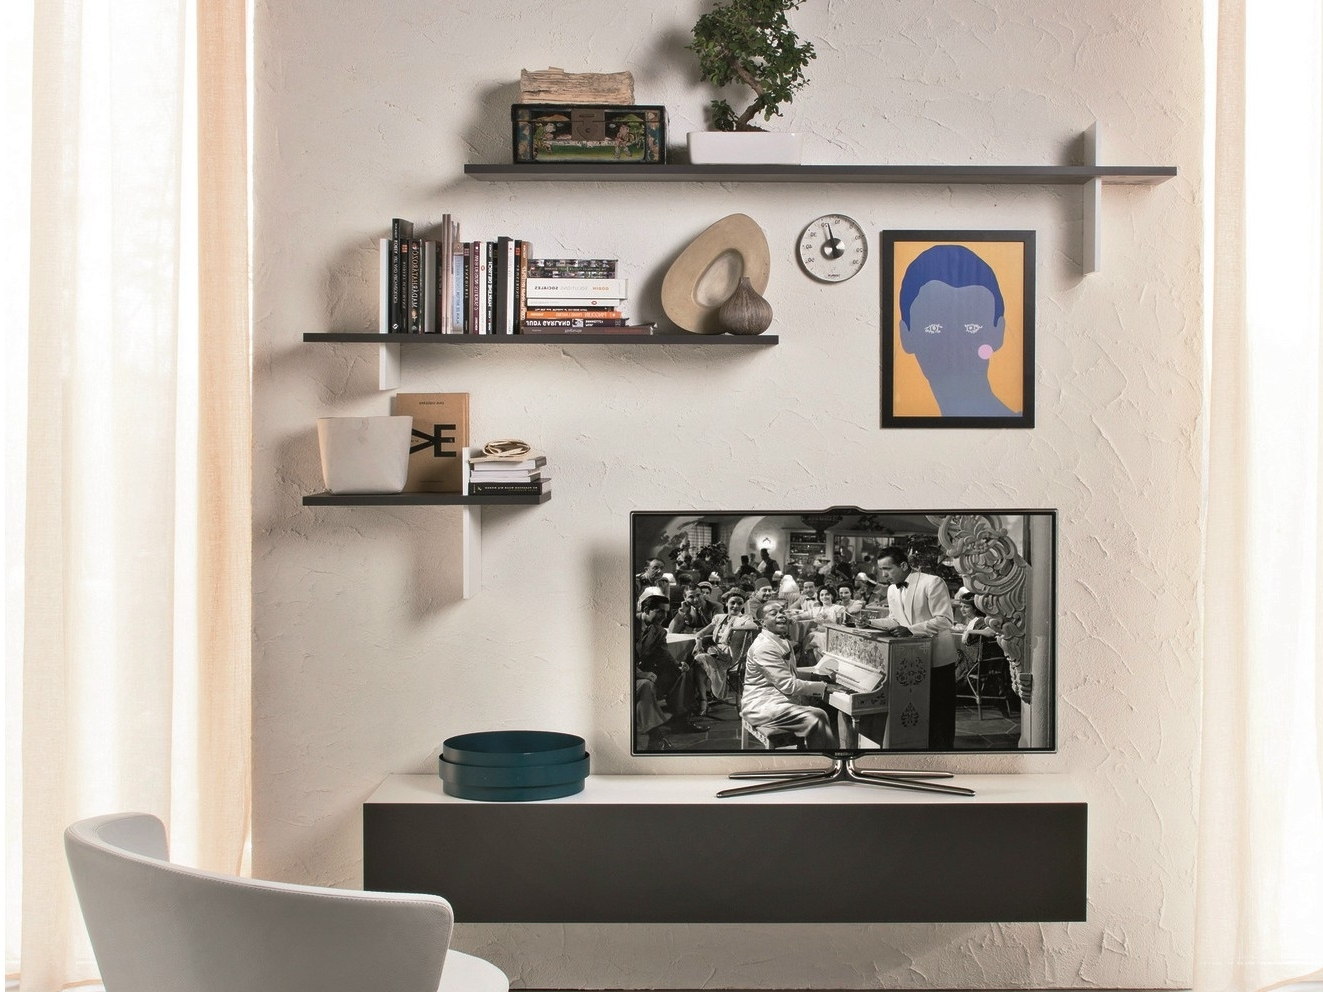 Preferred Painted Shelving Units Intended For Wall Shelves Design: Amazing Ideas Shelving Units For Wall Mounted (View 4 of 15)